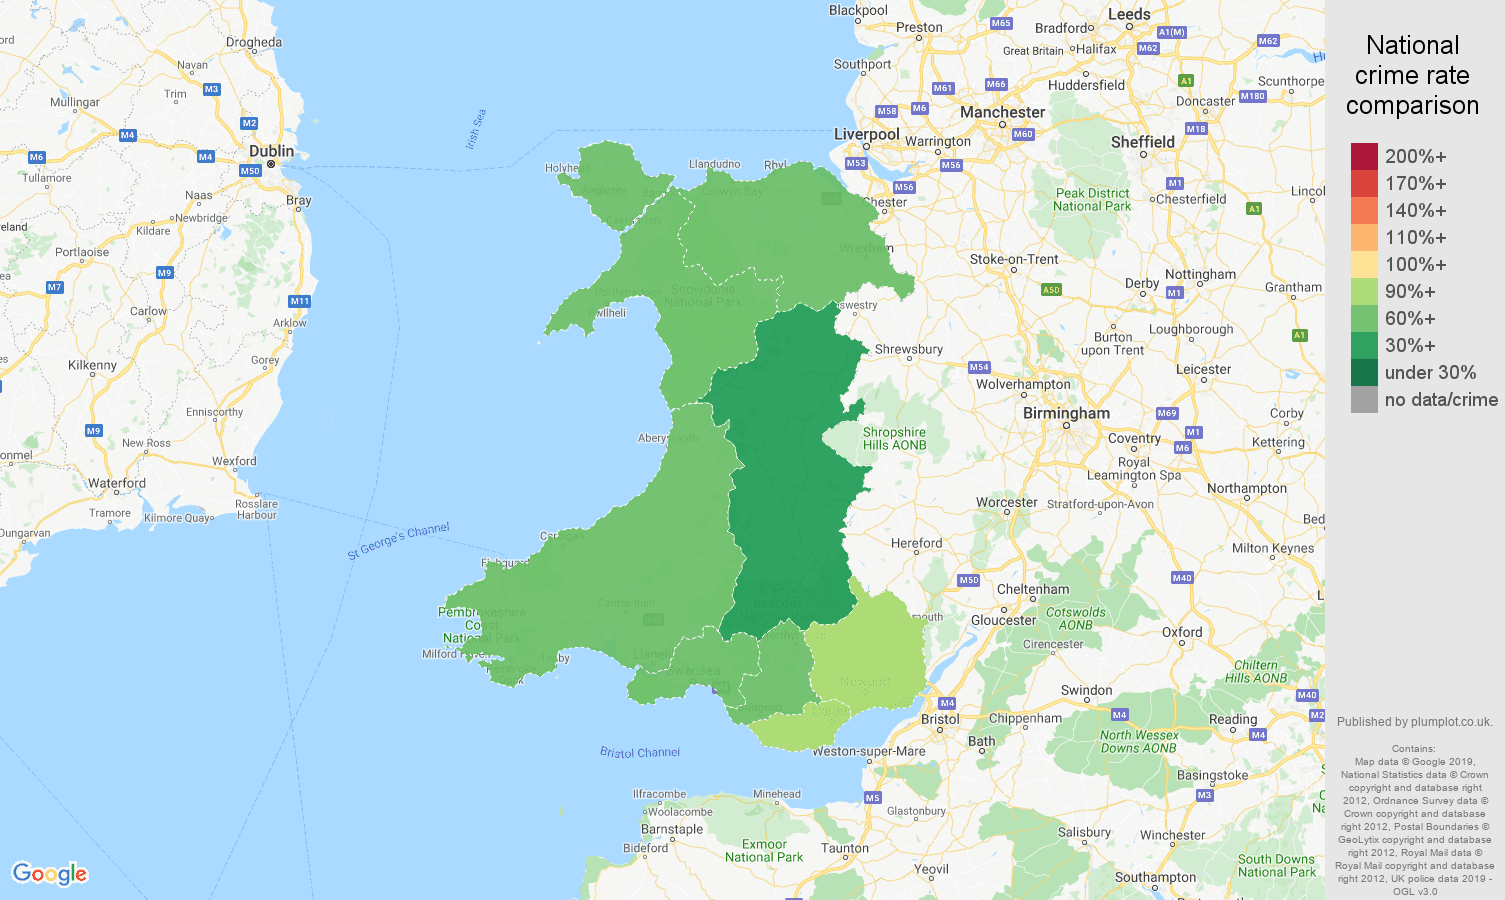 Wales other theft crime rate comparison map